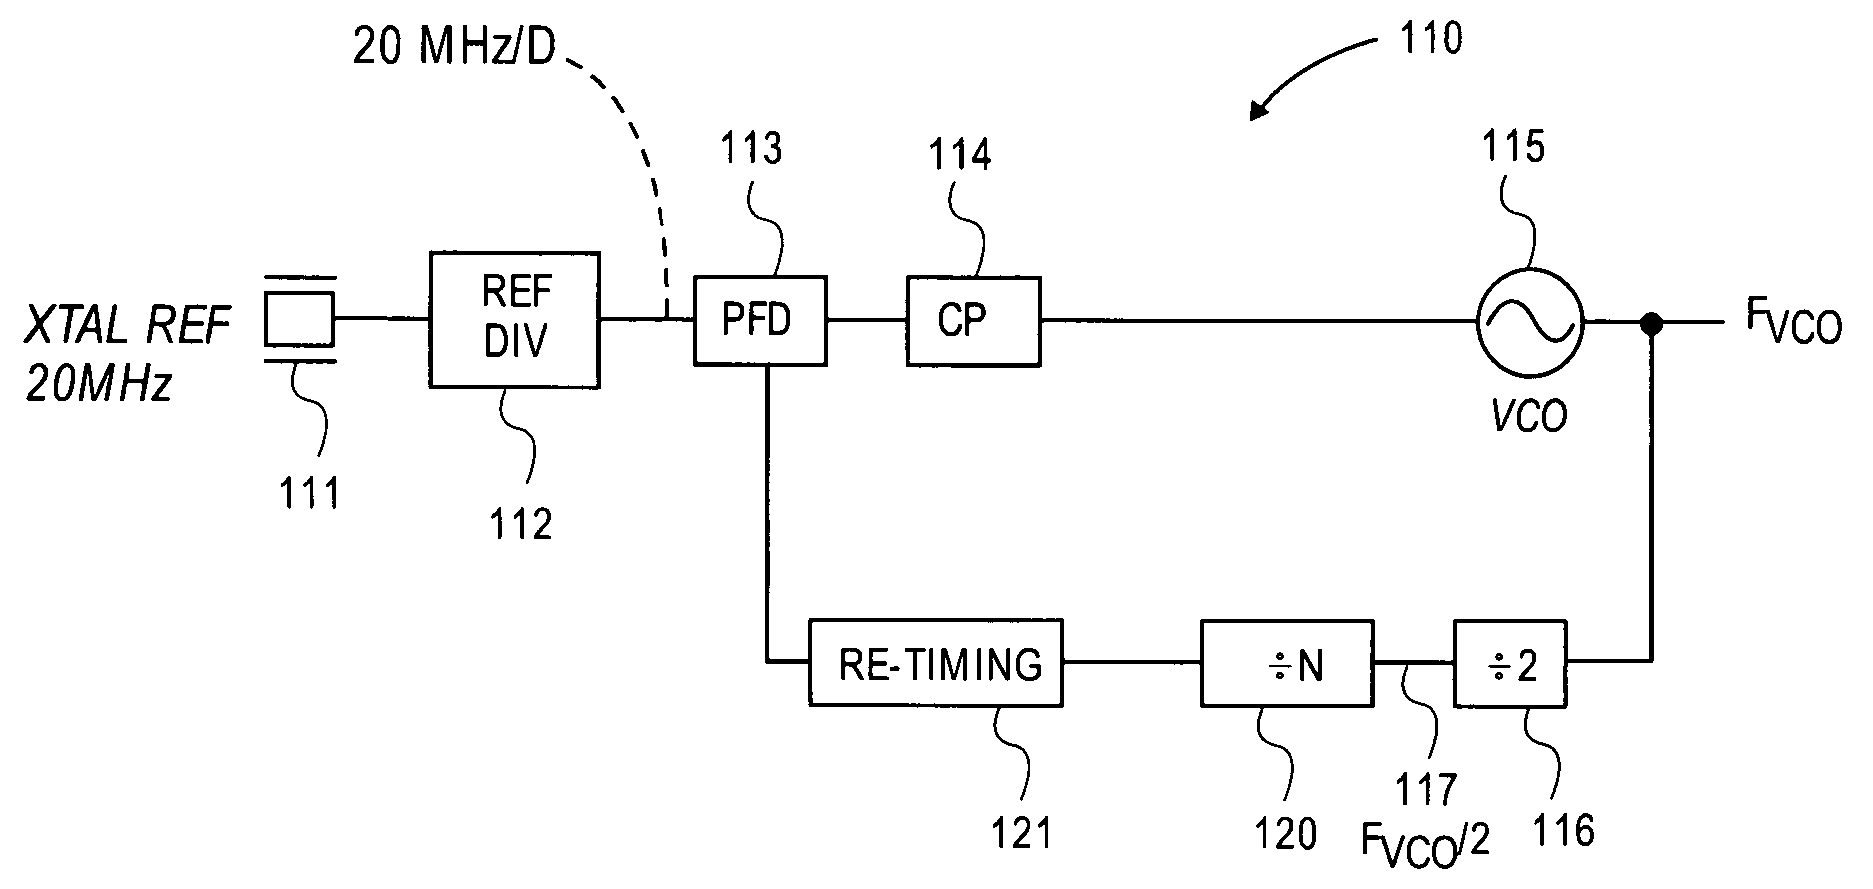 Patent Us7379722 Frequency Allocation Using A Single Vco Google 2 Mhz Standard With Dividers Drawing